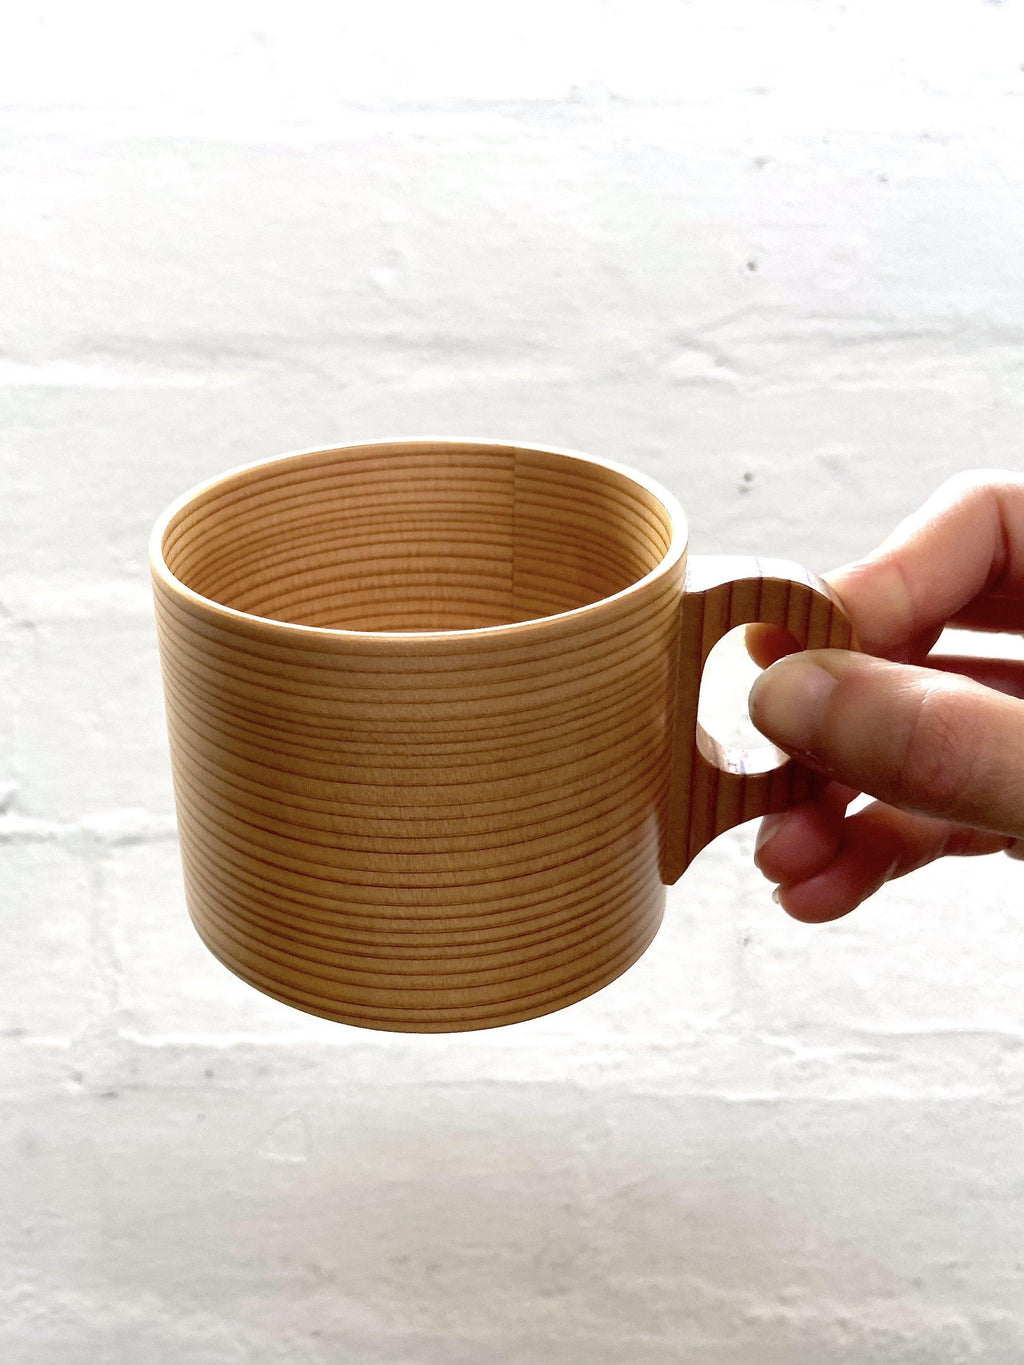 Magewappa Wooden Cup & Saucer